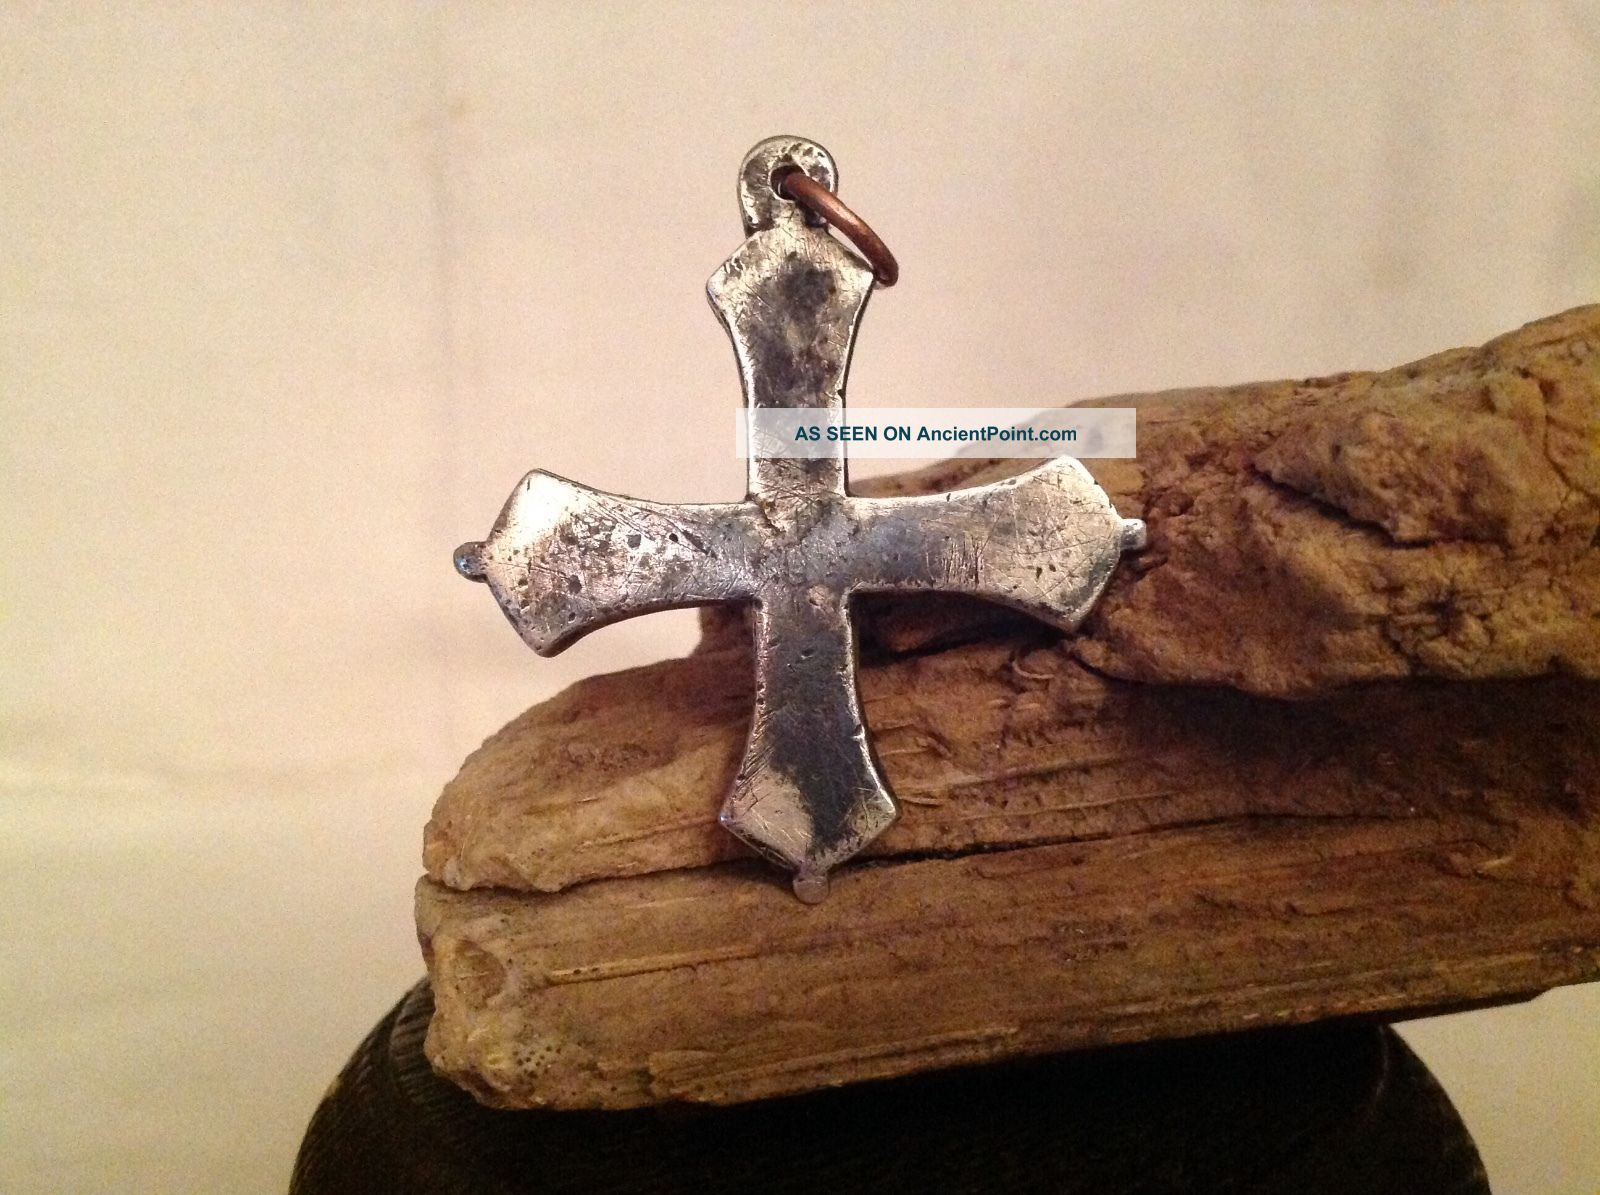 Solid Silver Religious Cross Medieval Antique Metal Detecting Find Vintage Old Brooches/Jewellery photo